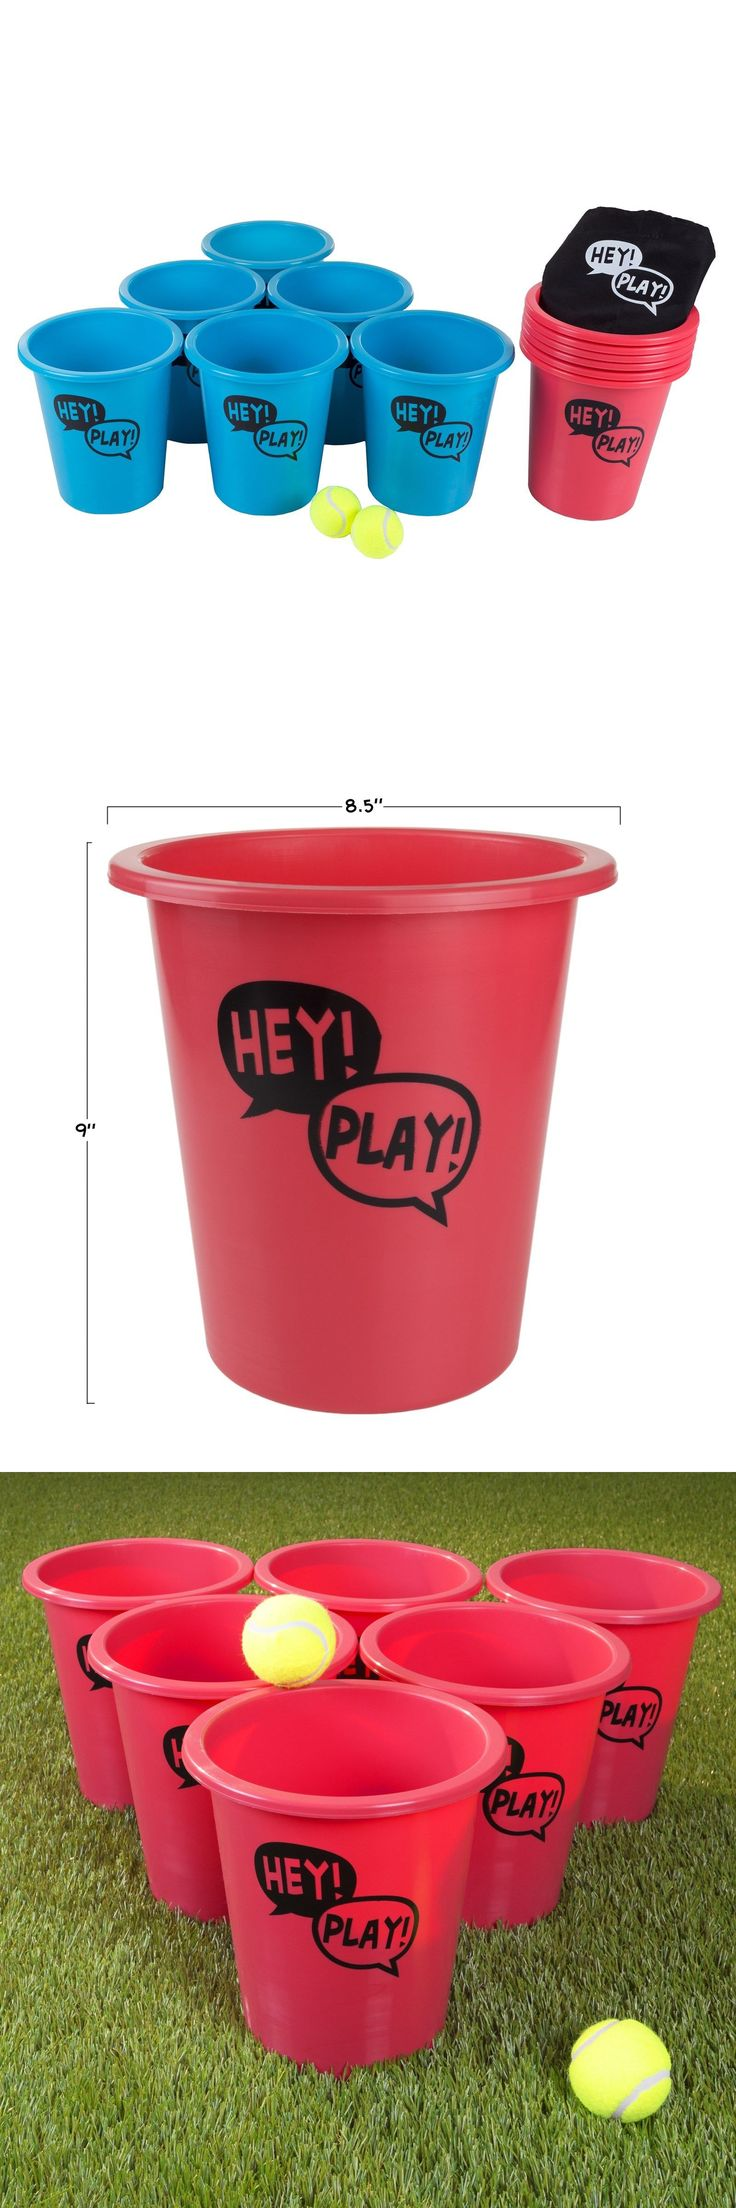 Other Backyard Games 159081: Bucket Ball Giant Beer Pong Game Table Lawn Drinking Beach Friendly Game -> BUY IT NOW ONLY: $32.99 on eBay!